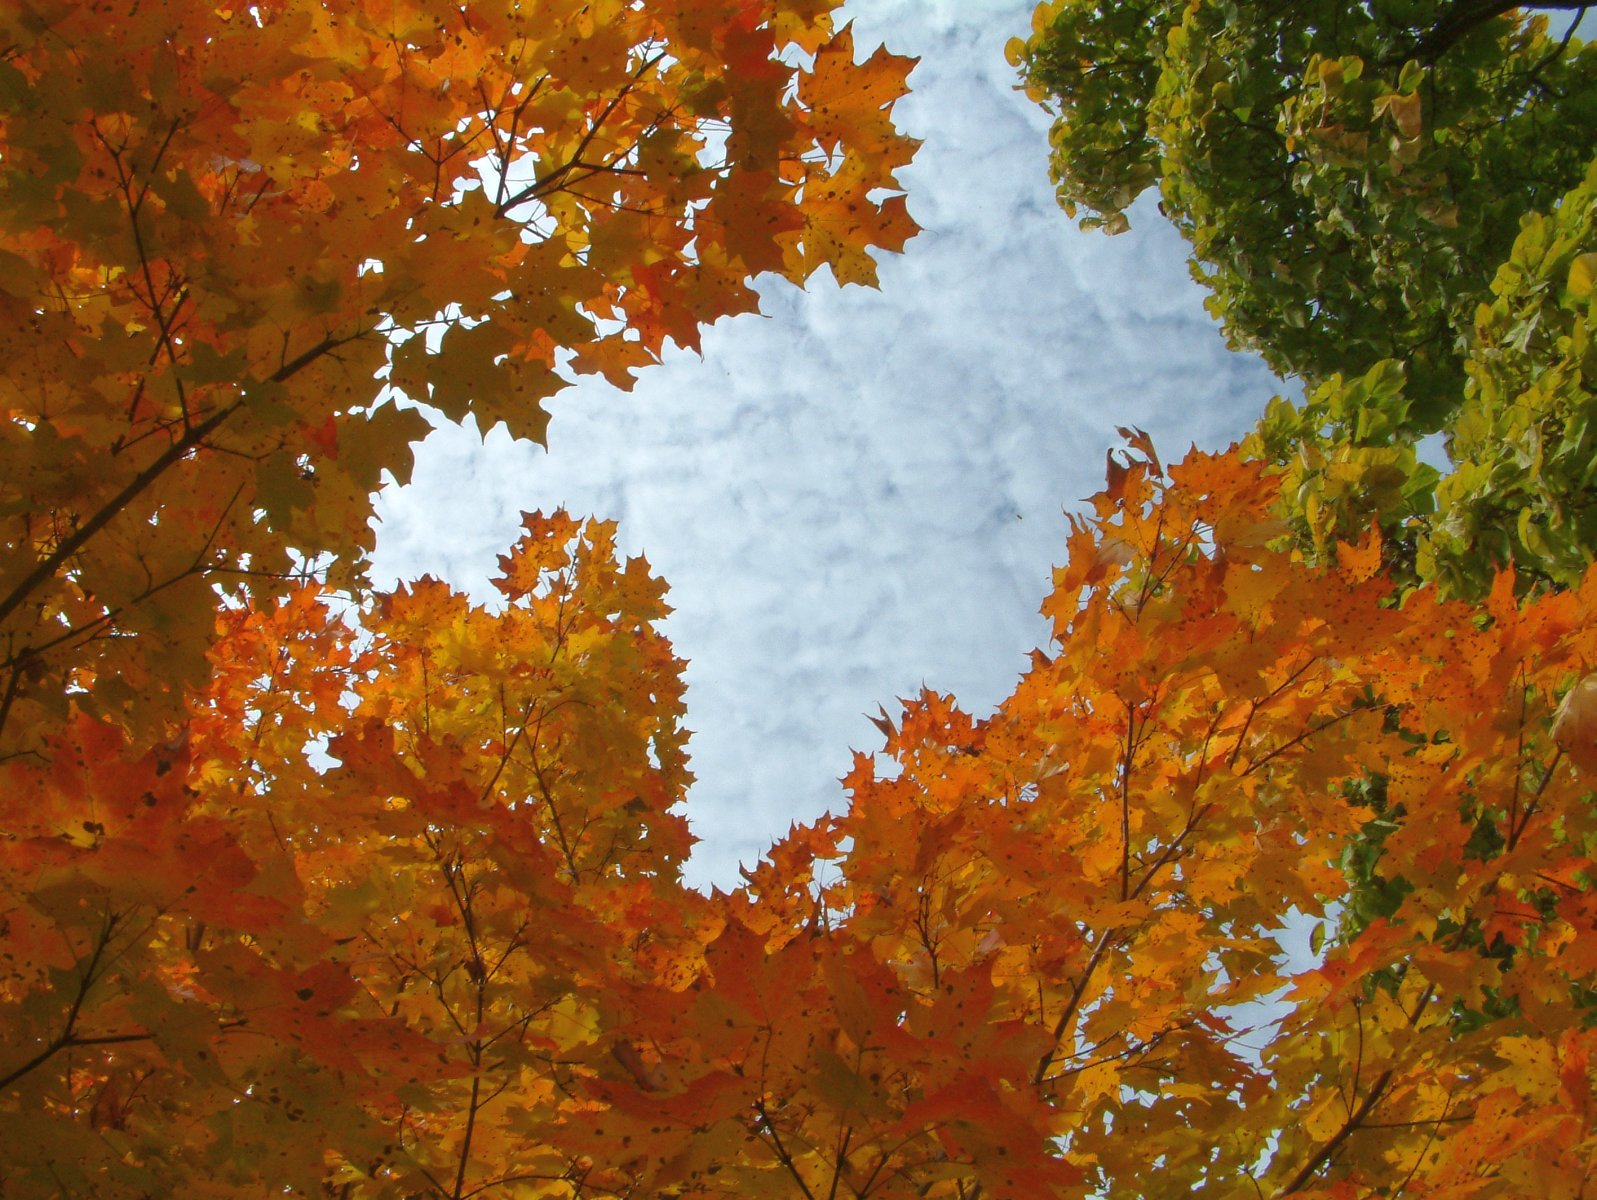 October Maple and Catalpa Trees under a Blue Sky